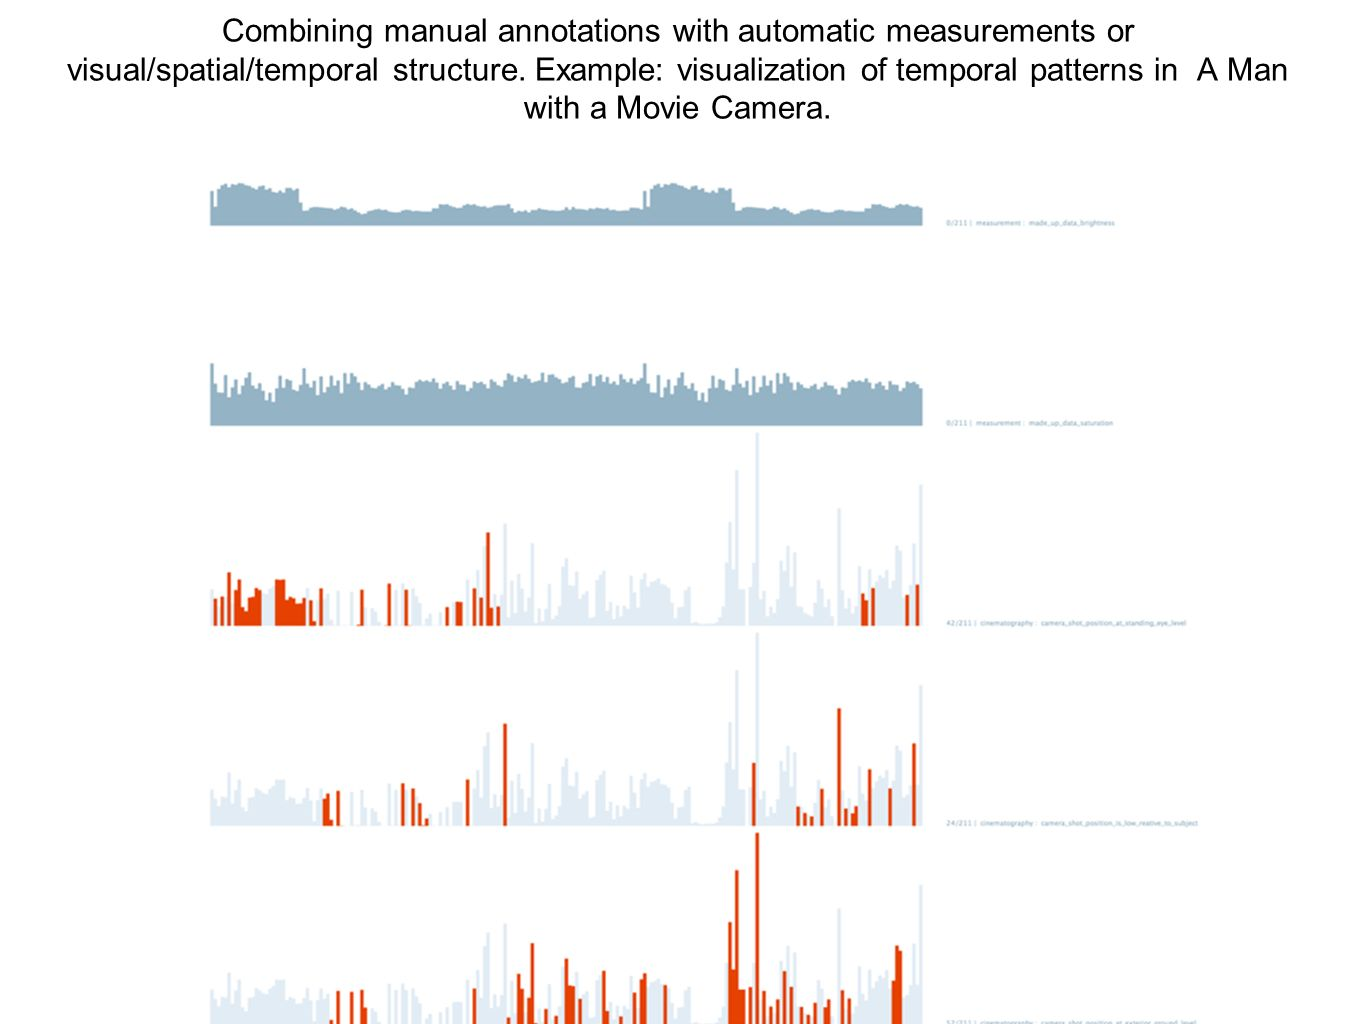 Combining manual annotations with automatic measurements or visual/spatial/temporal structure.